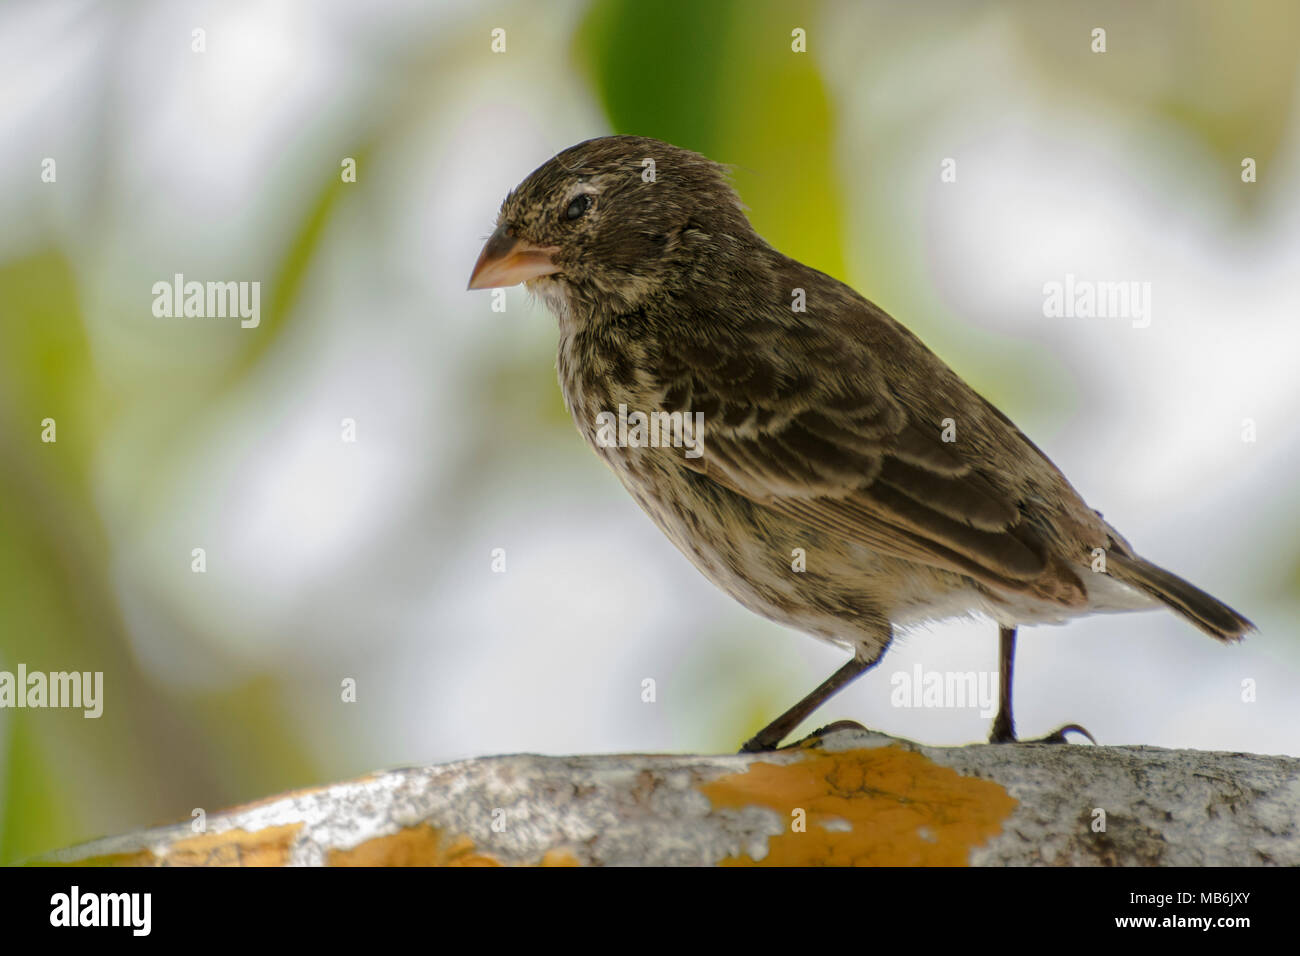 A small ground finch (Geospiza fuliginosa) a species endemic to the galapagos islands and famous as one of the bird species Darwin studied. - Stock Image